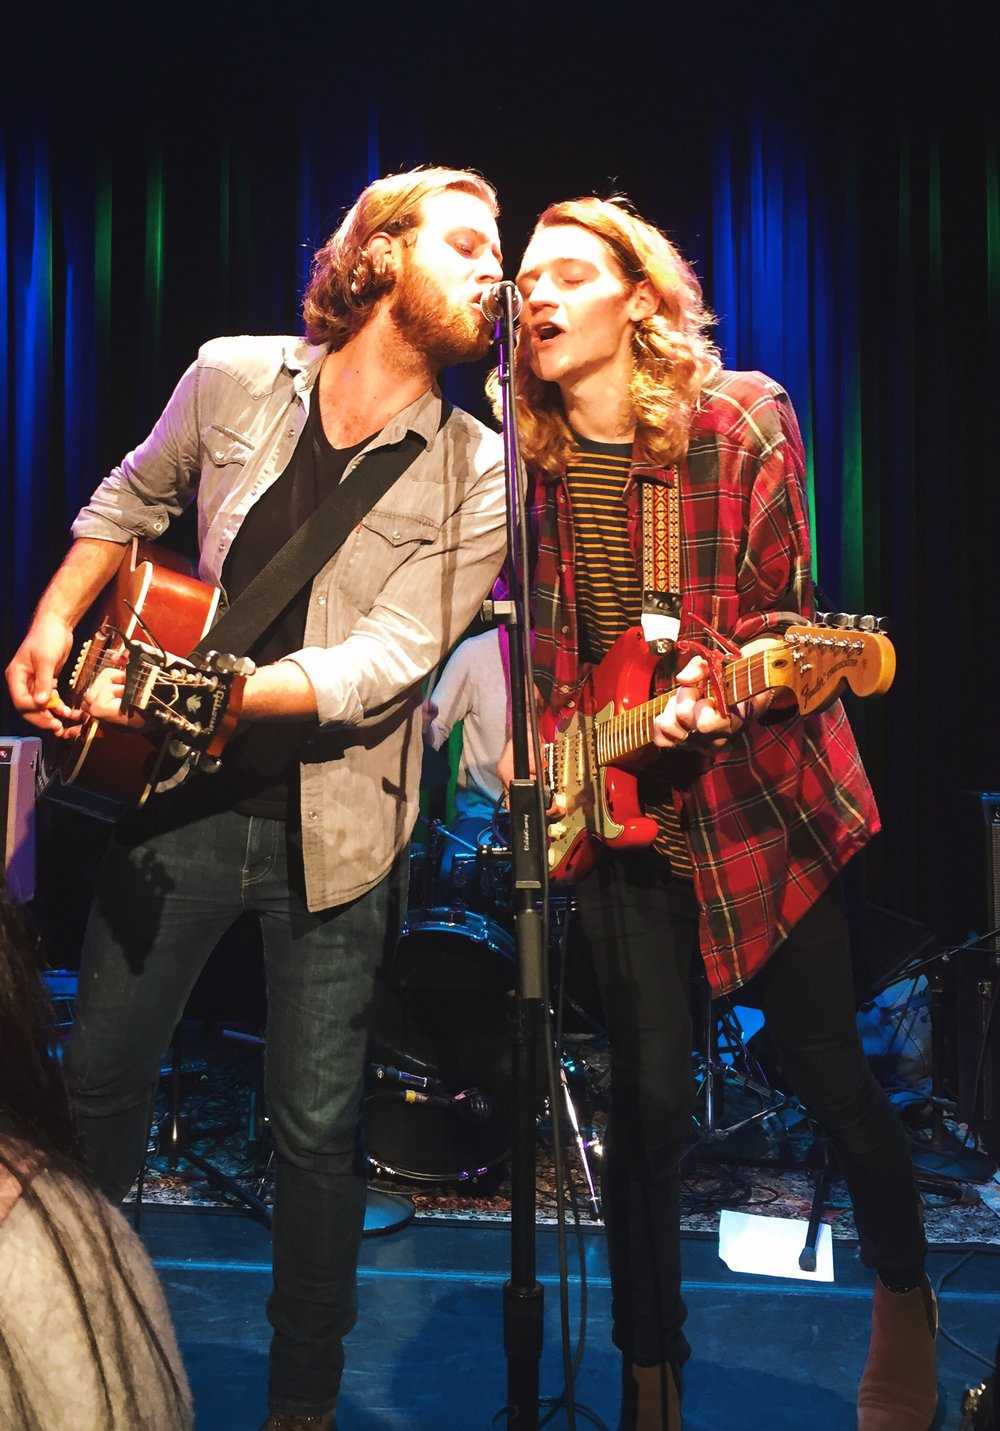 Nick Santino and Carter Hulsey performing in Boston in November 2016. Nick, a Boston native, has been a huge influence on my attitude toward the city